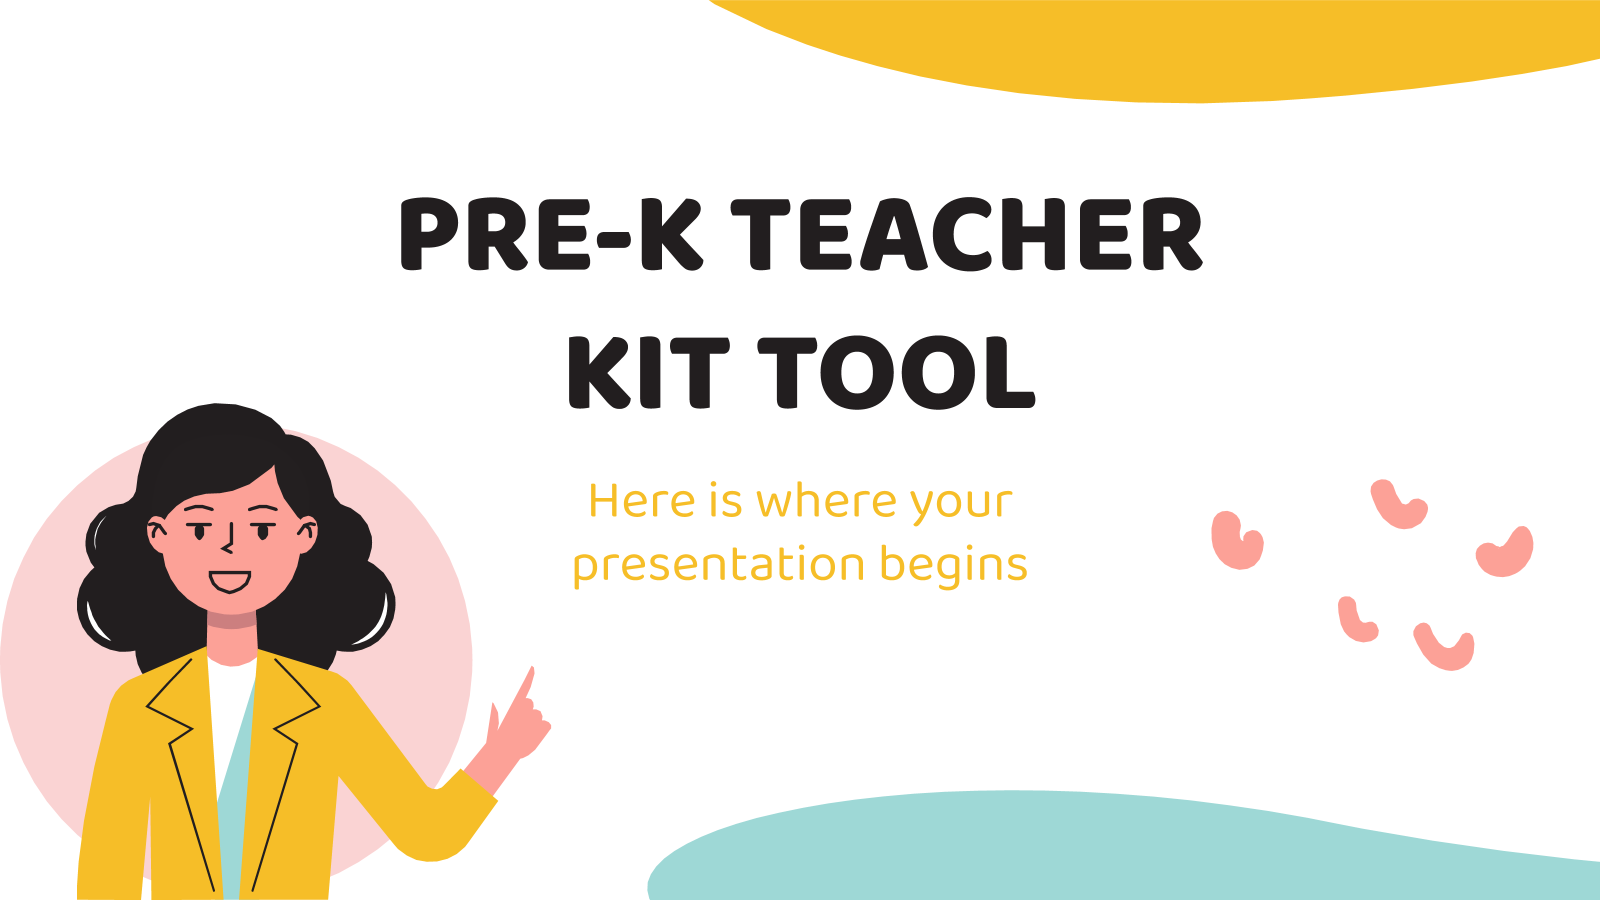 Pre-K teacher kit tool presentation template